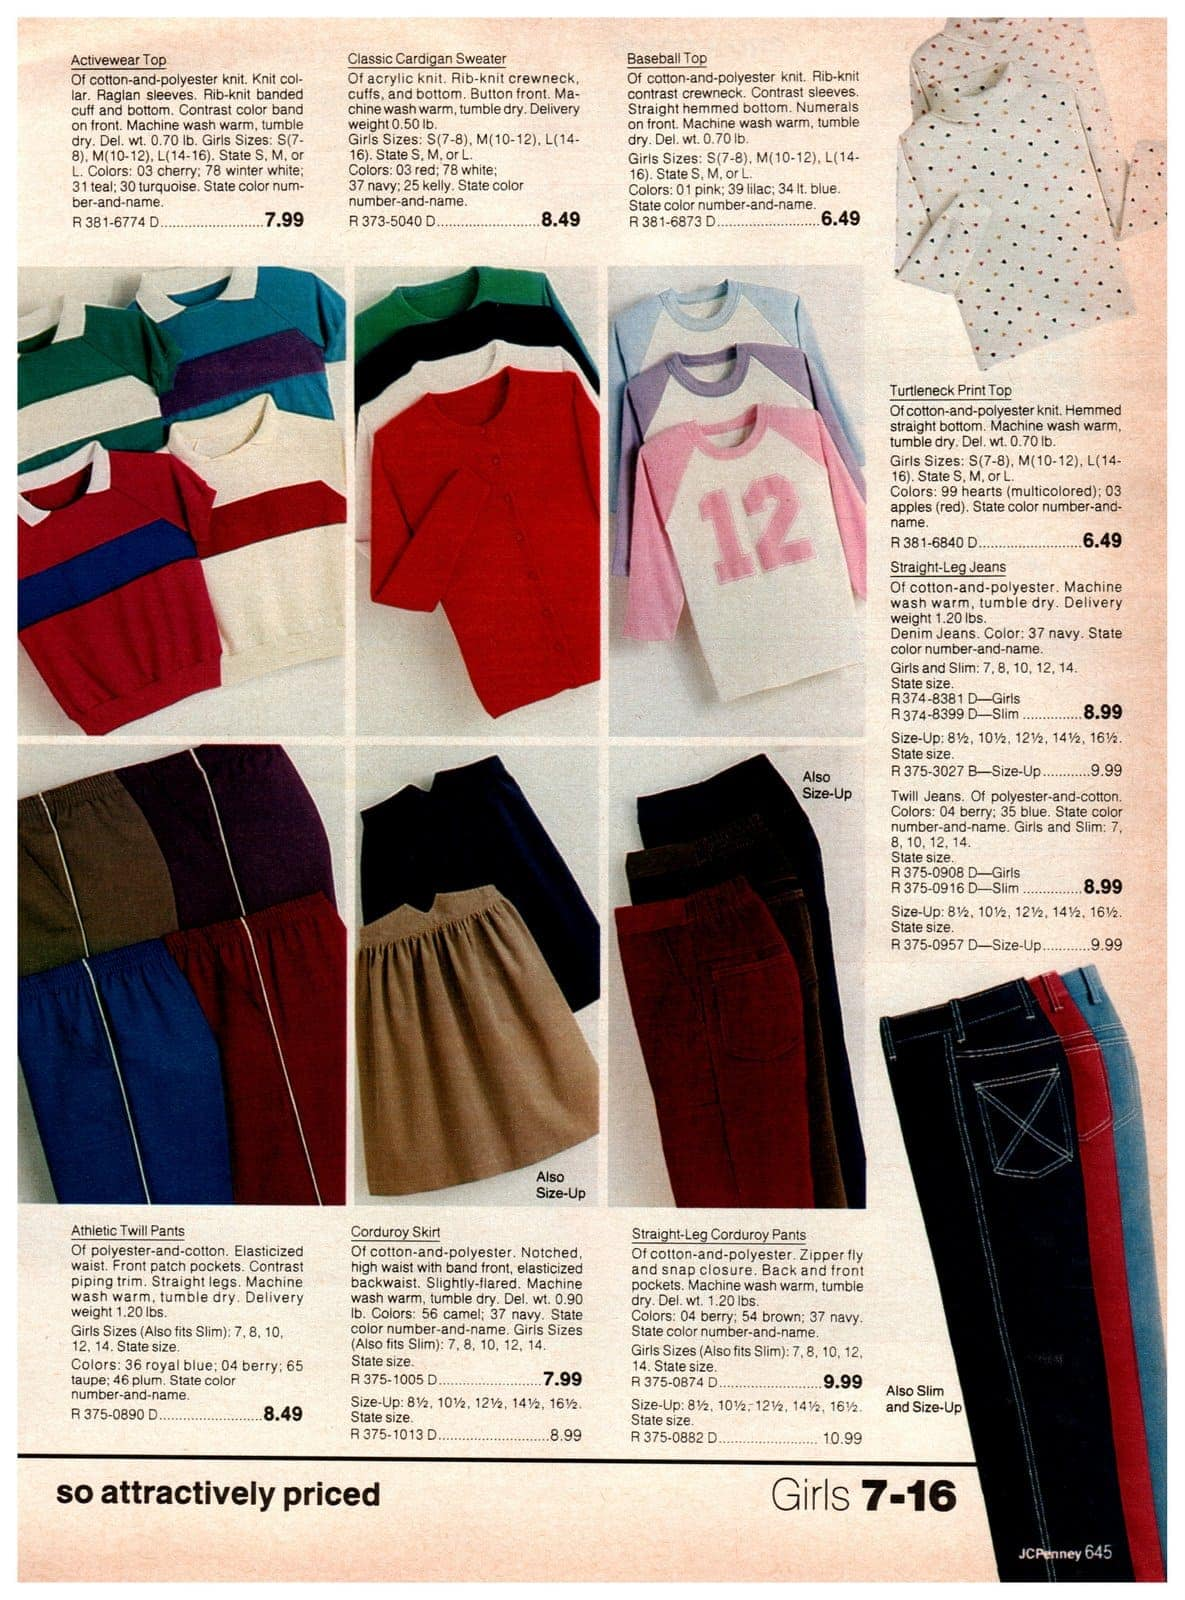 Vintage styles of activewear tops, cardigan sweaters, baseball jerseys, print turtleneck tops and straight-leg jeans